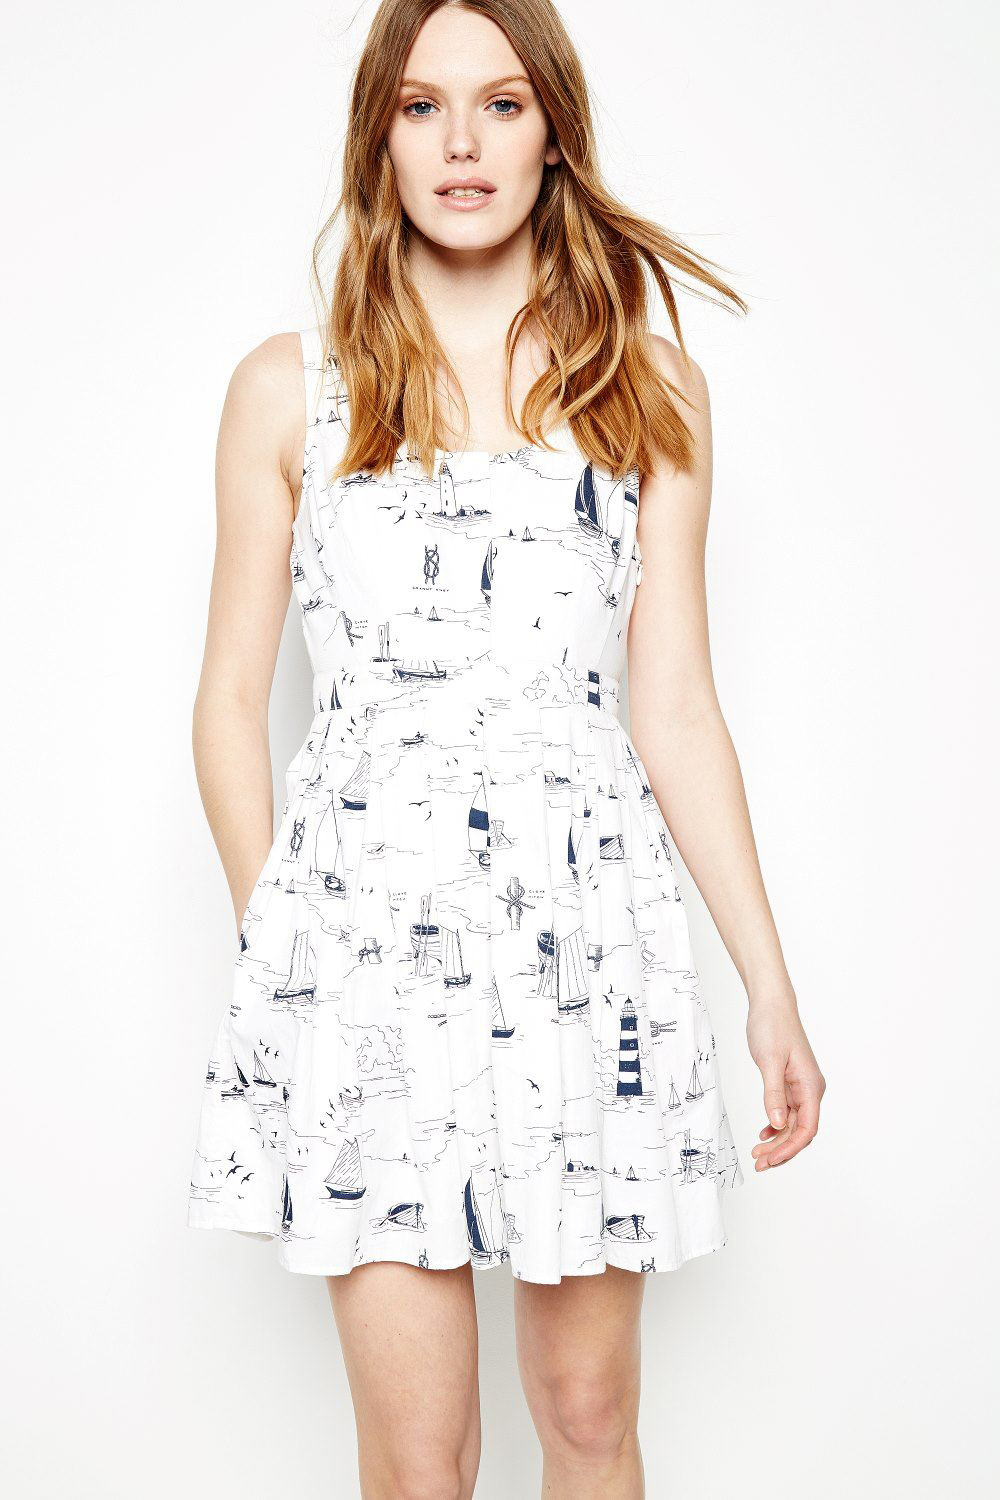 Blog-Mode-And-The-City-Lifestyle-Cinq-Petites-Choses-179-Jack-Wills